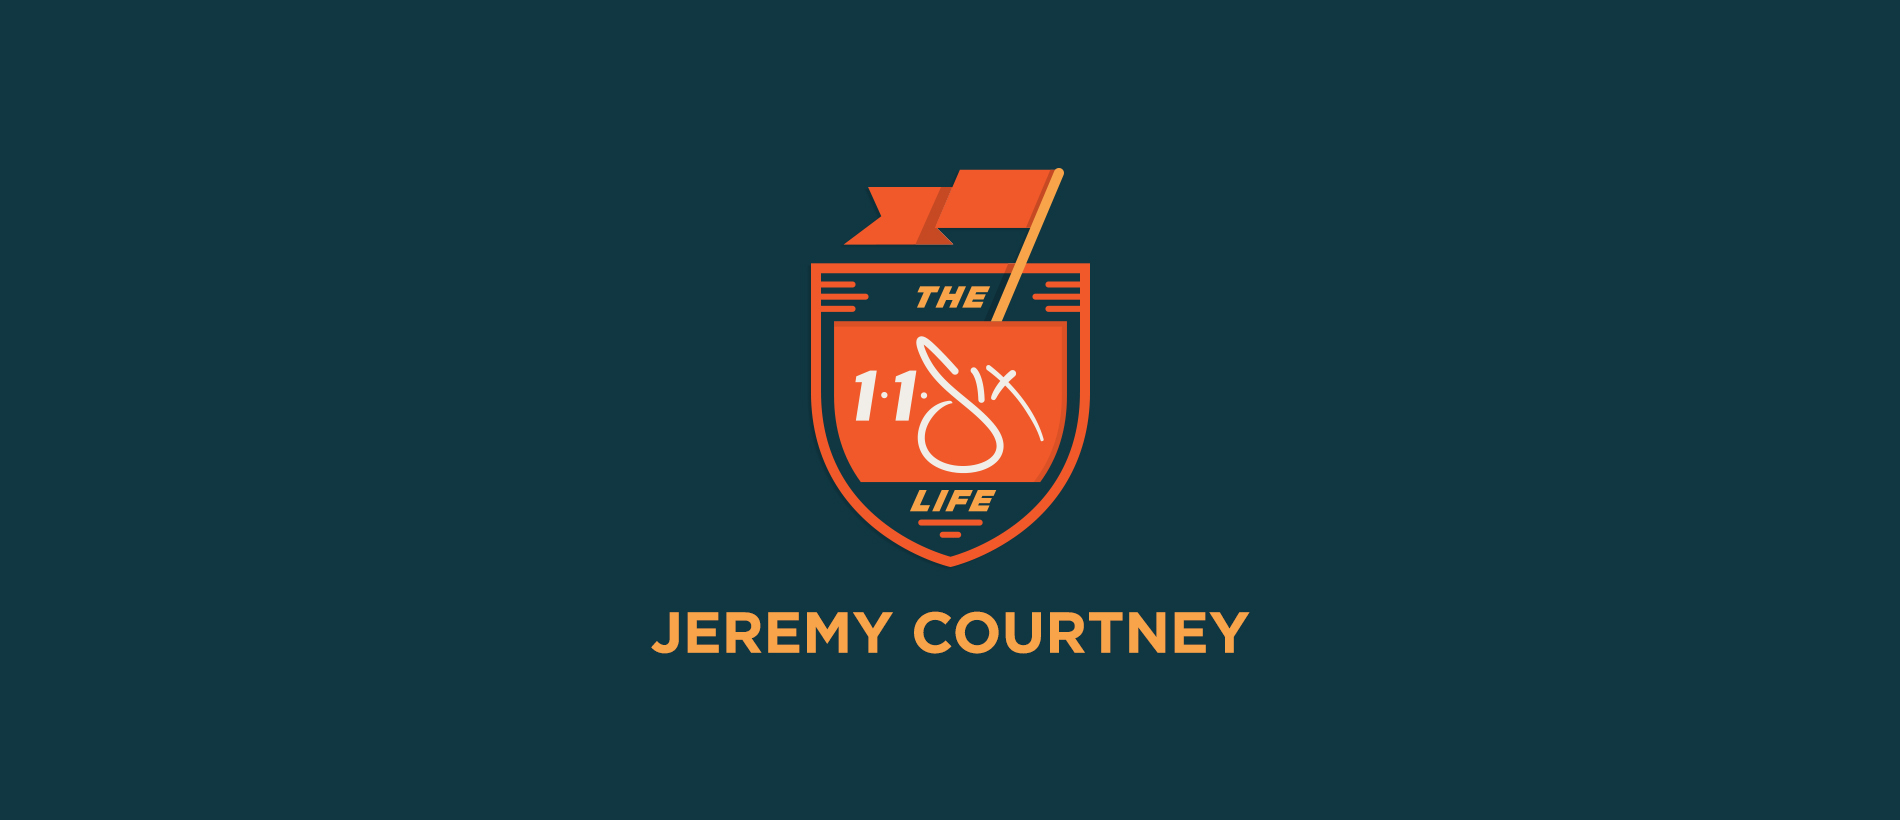 116 Life x Jeremy Courtney